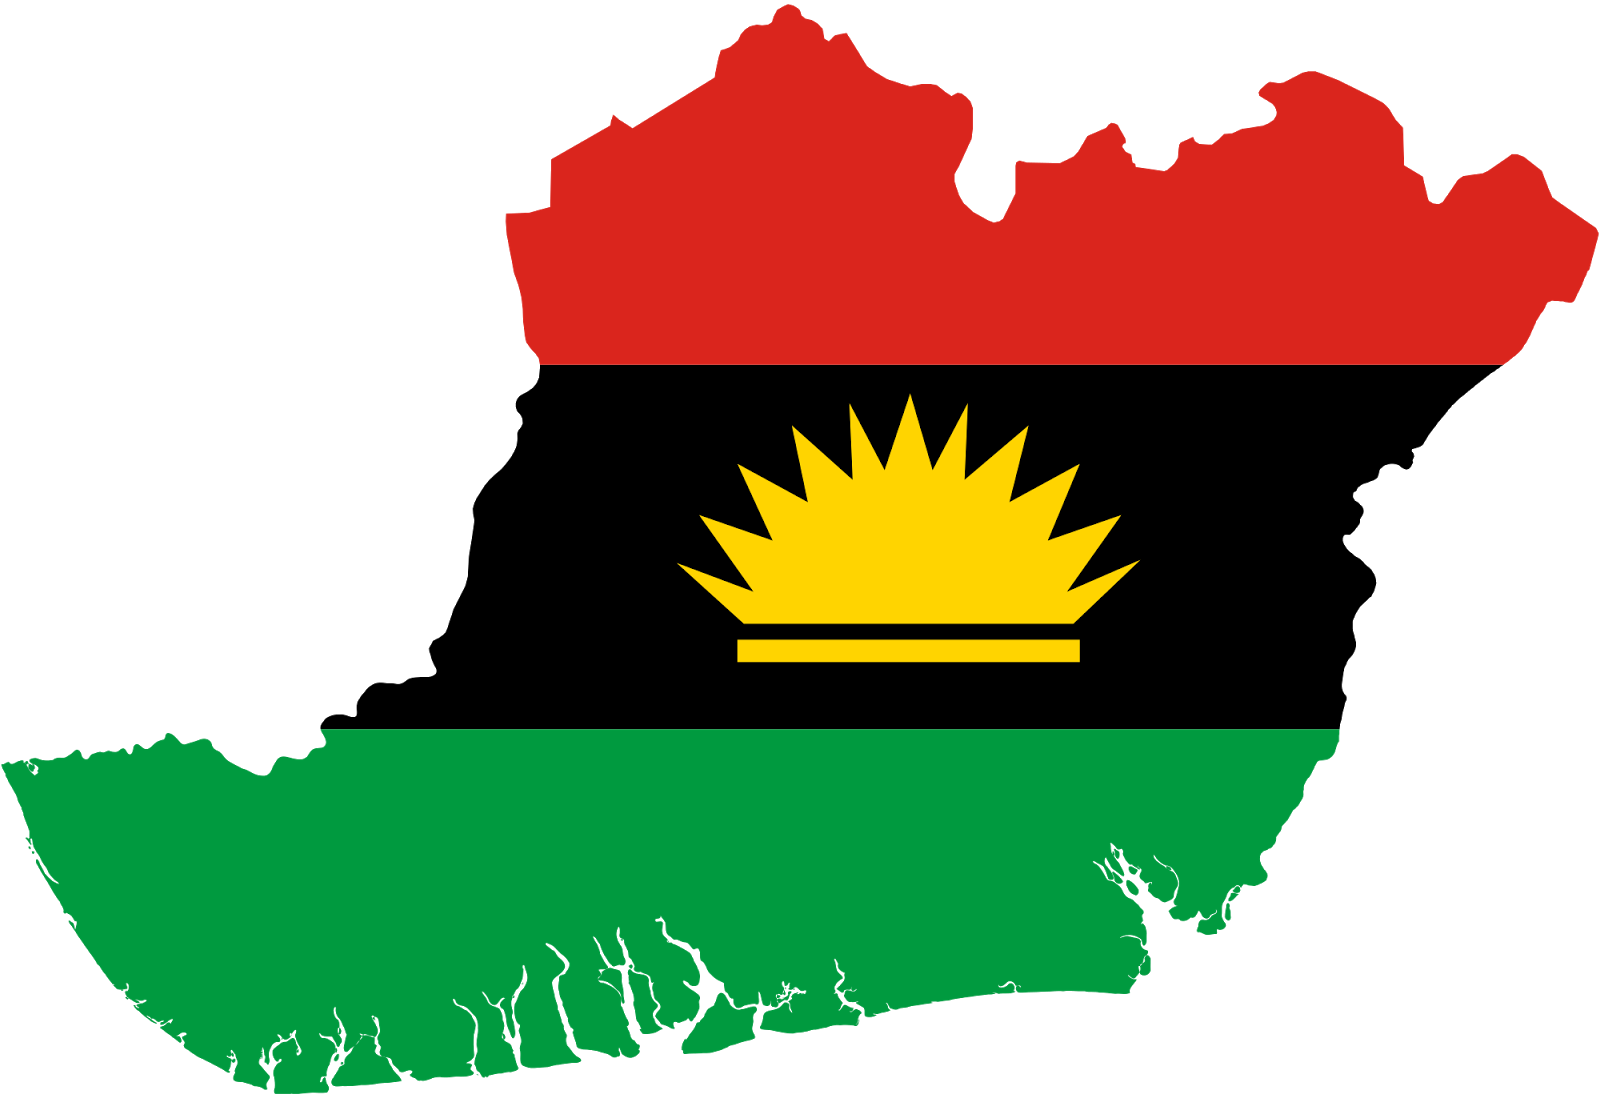 biafra Exit map